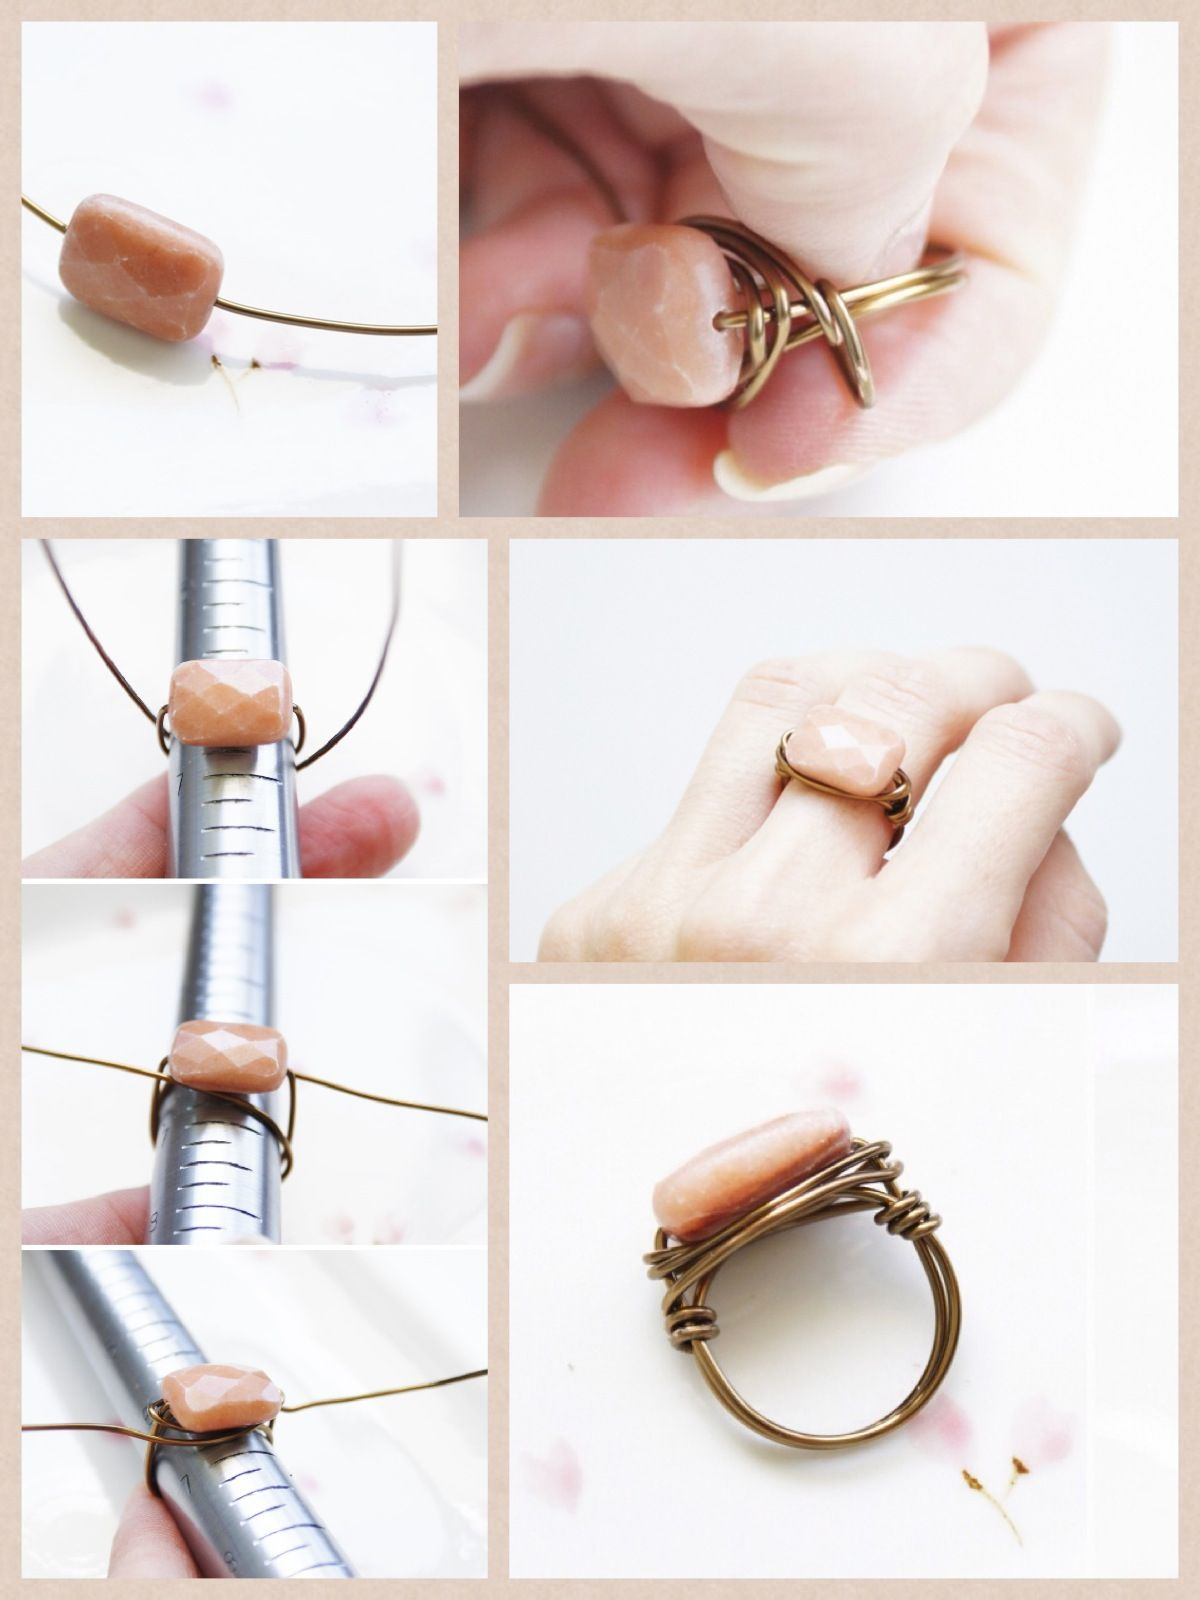 DIY Stone Ring Projects For Girls Ring Craft And Jewlery - Cute diy wire rings for middle phalanges